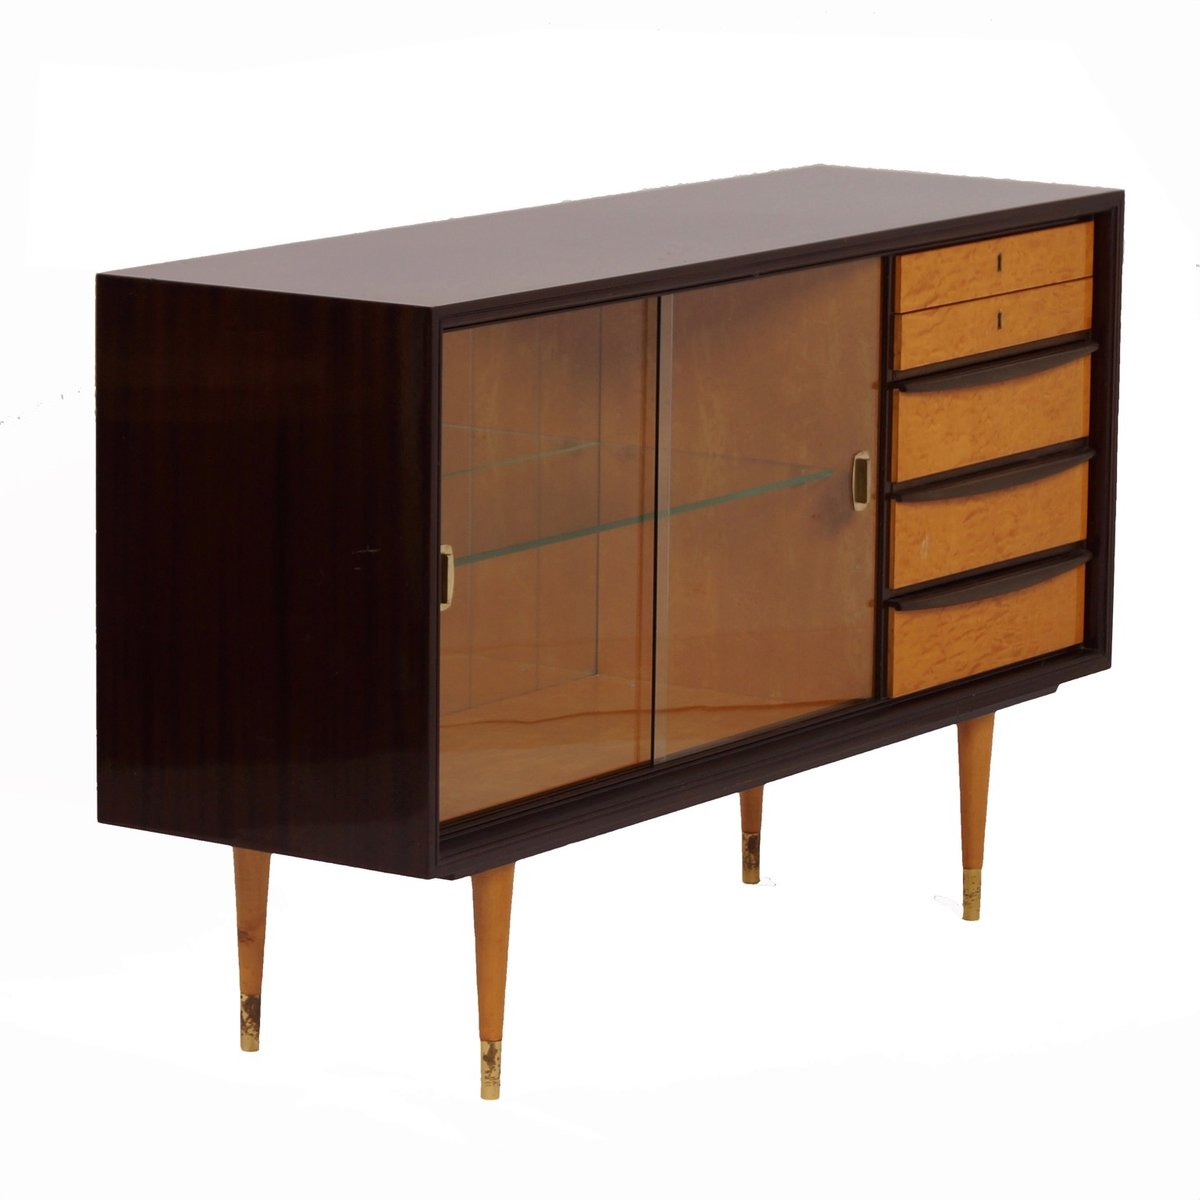 mahagoni sideboard mit vitrine messing beschl gen 1960er bei pamono kaufen. Black Bedroom Furniture Sets. Home Design Ideas